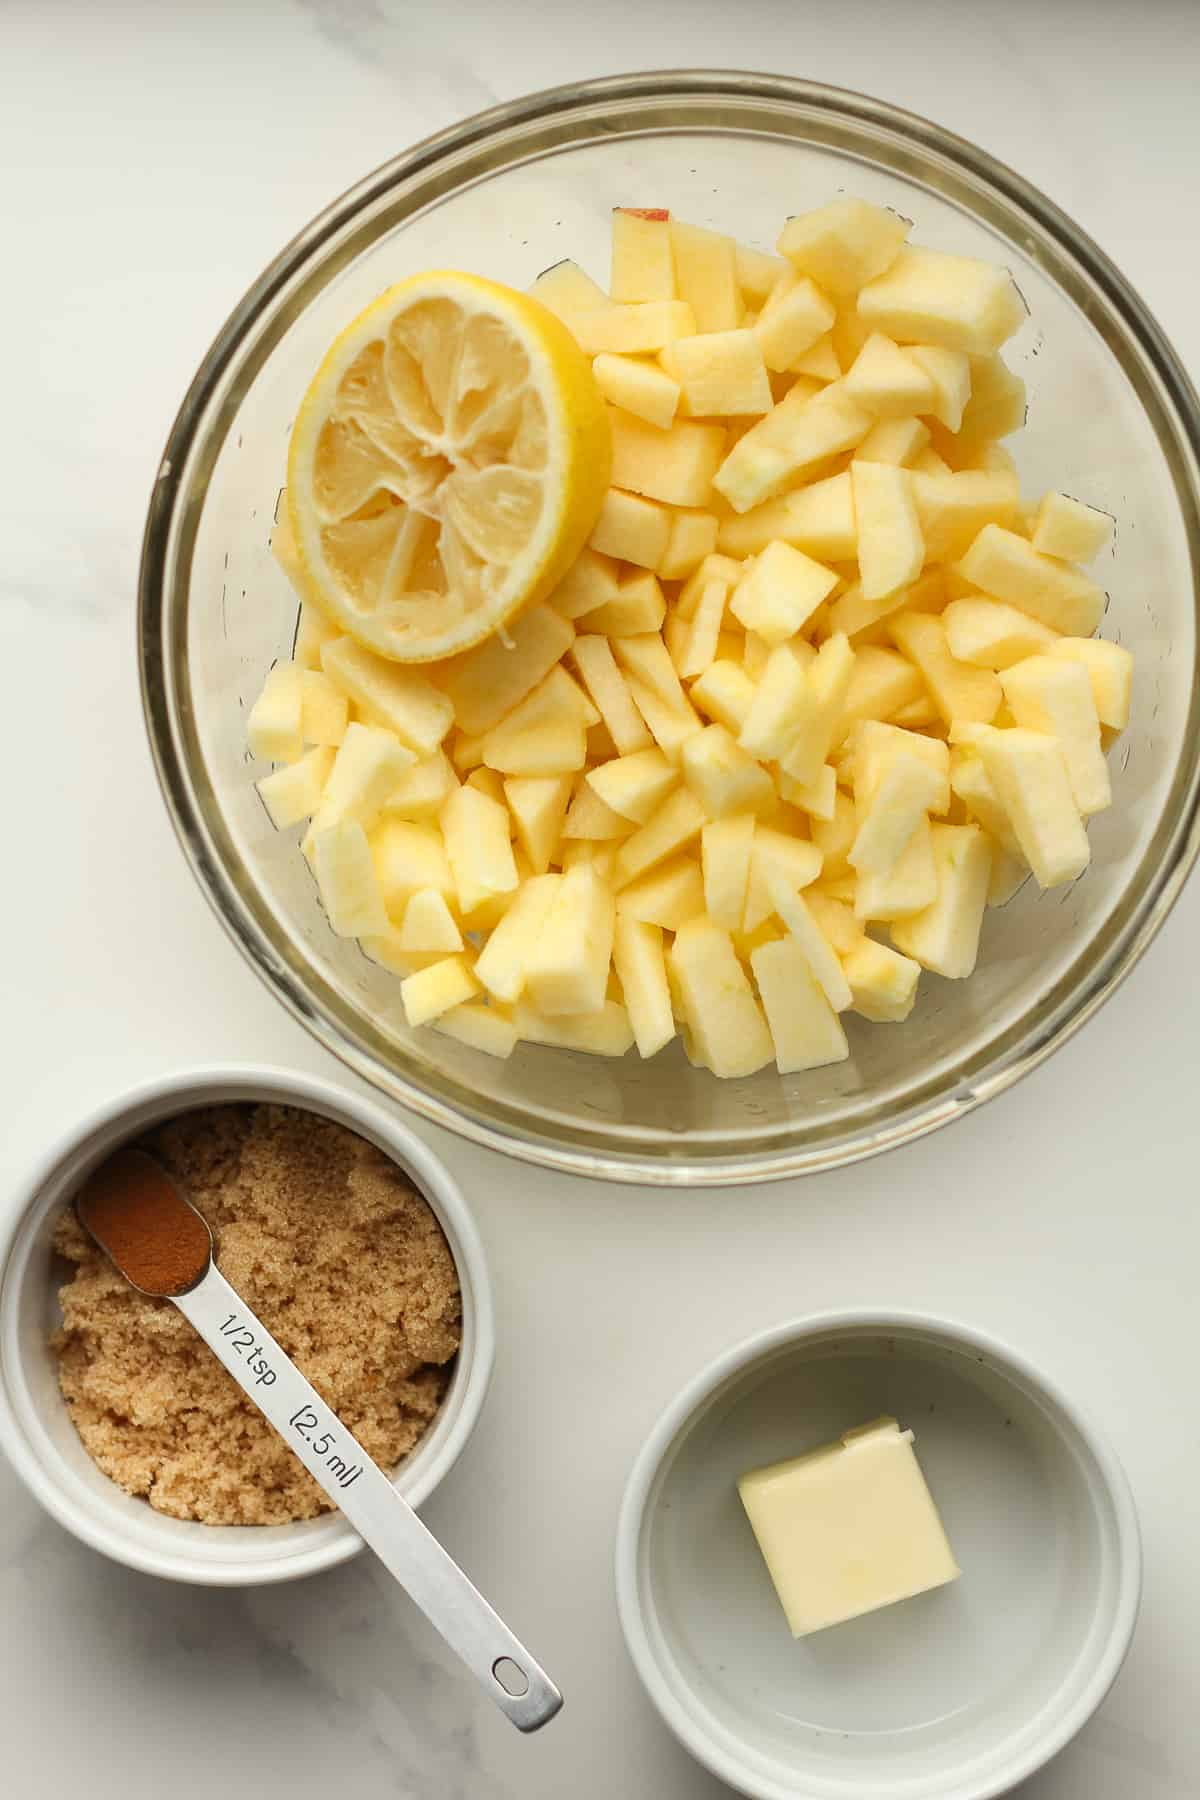 The apple layer ingredients.